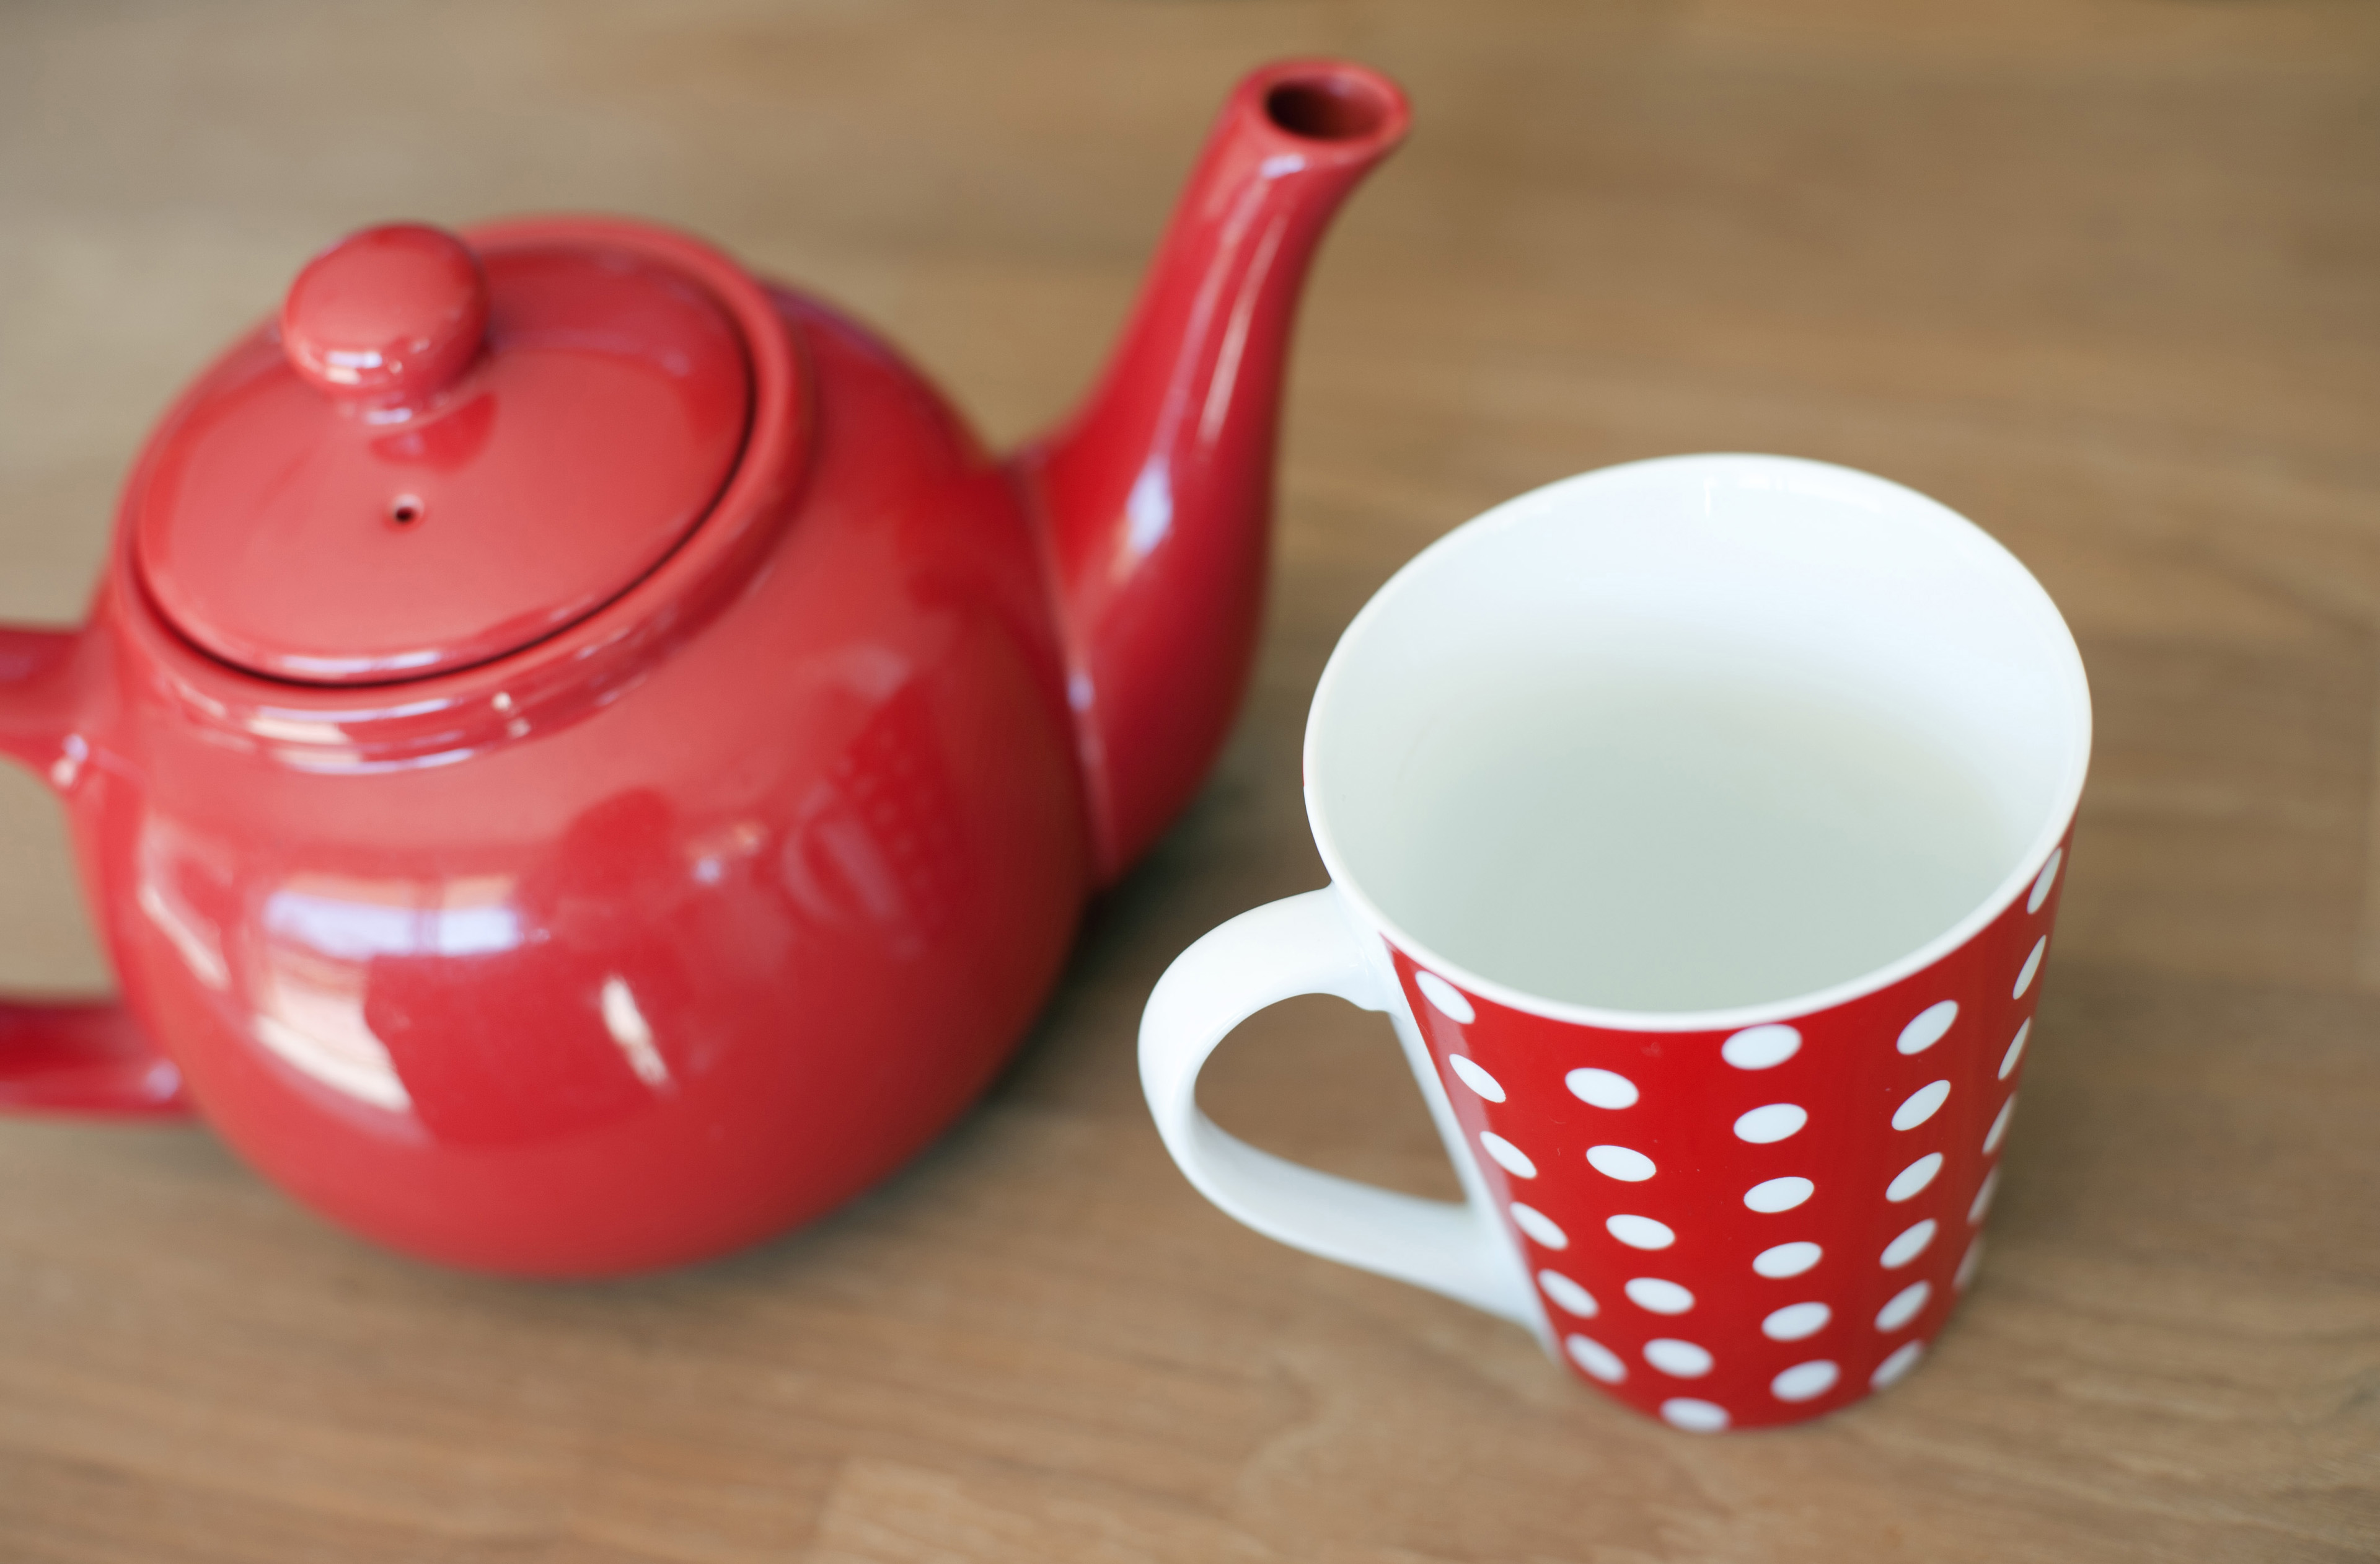 High angle view of a colorful red polka dot ceramic mug and teapot on a brown background